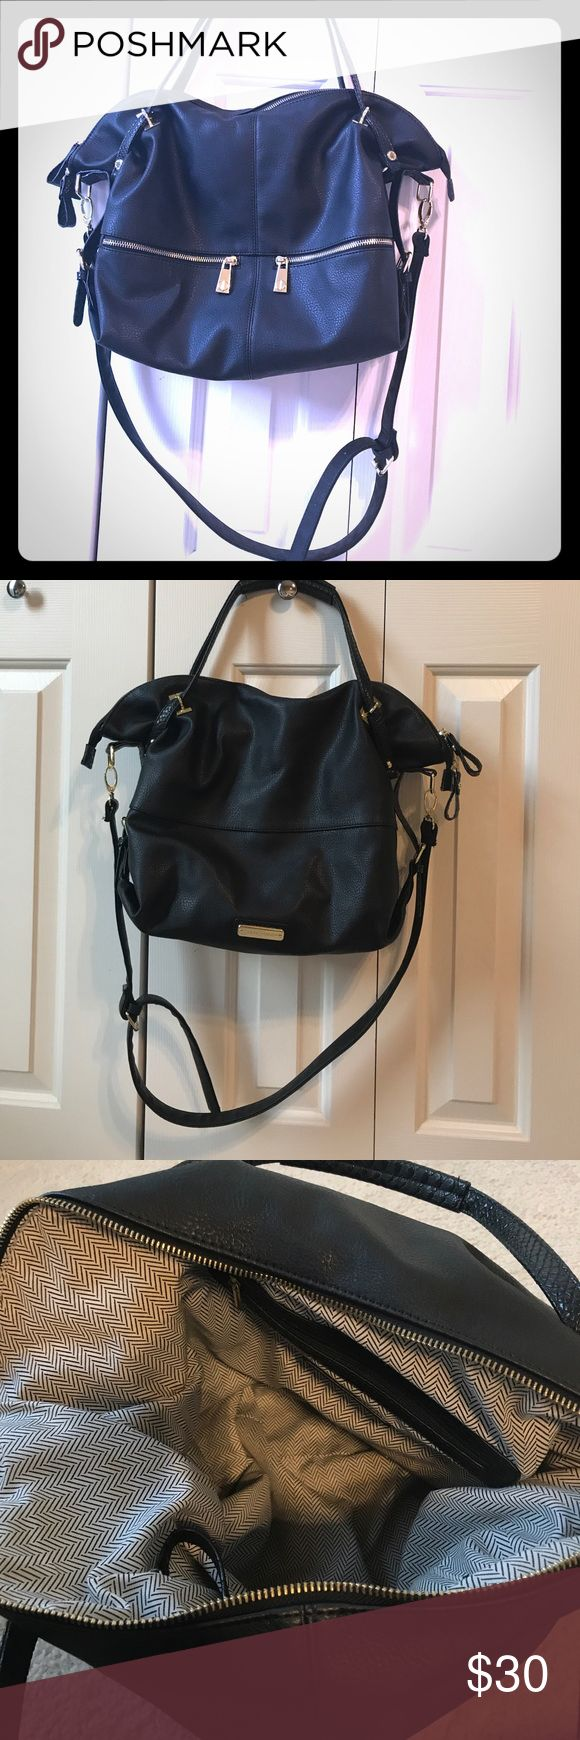 "Steve Madden large black leather satchel purse Large black leather purse with gold hardware. Has 2 shoulder/arm straps and removable/adjustable crossbody strap. 2 zip exterior pockets. 2 interior slip pockets and 1 interior zip pocket. Only used a few times, great condition. L 15"" W 4"" H 13"". Crossbody strap 36.5""- 42"". Handles 17.5"" long Steve Madden Bags Satchels"